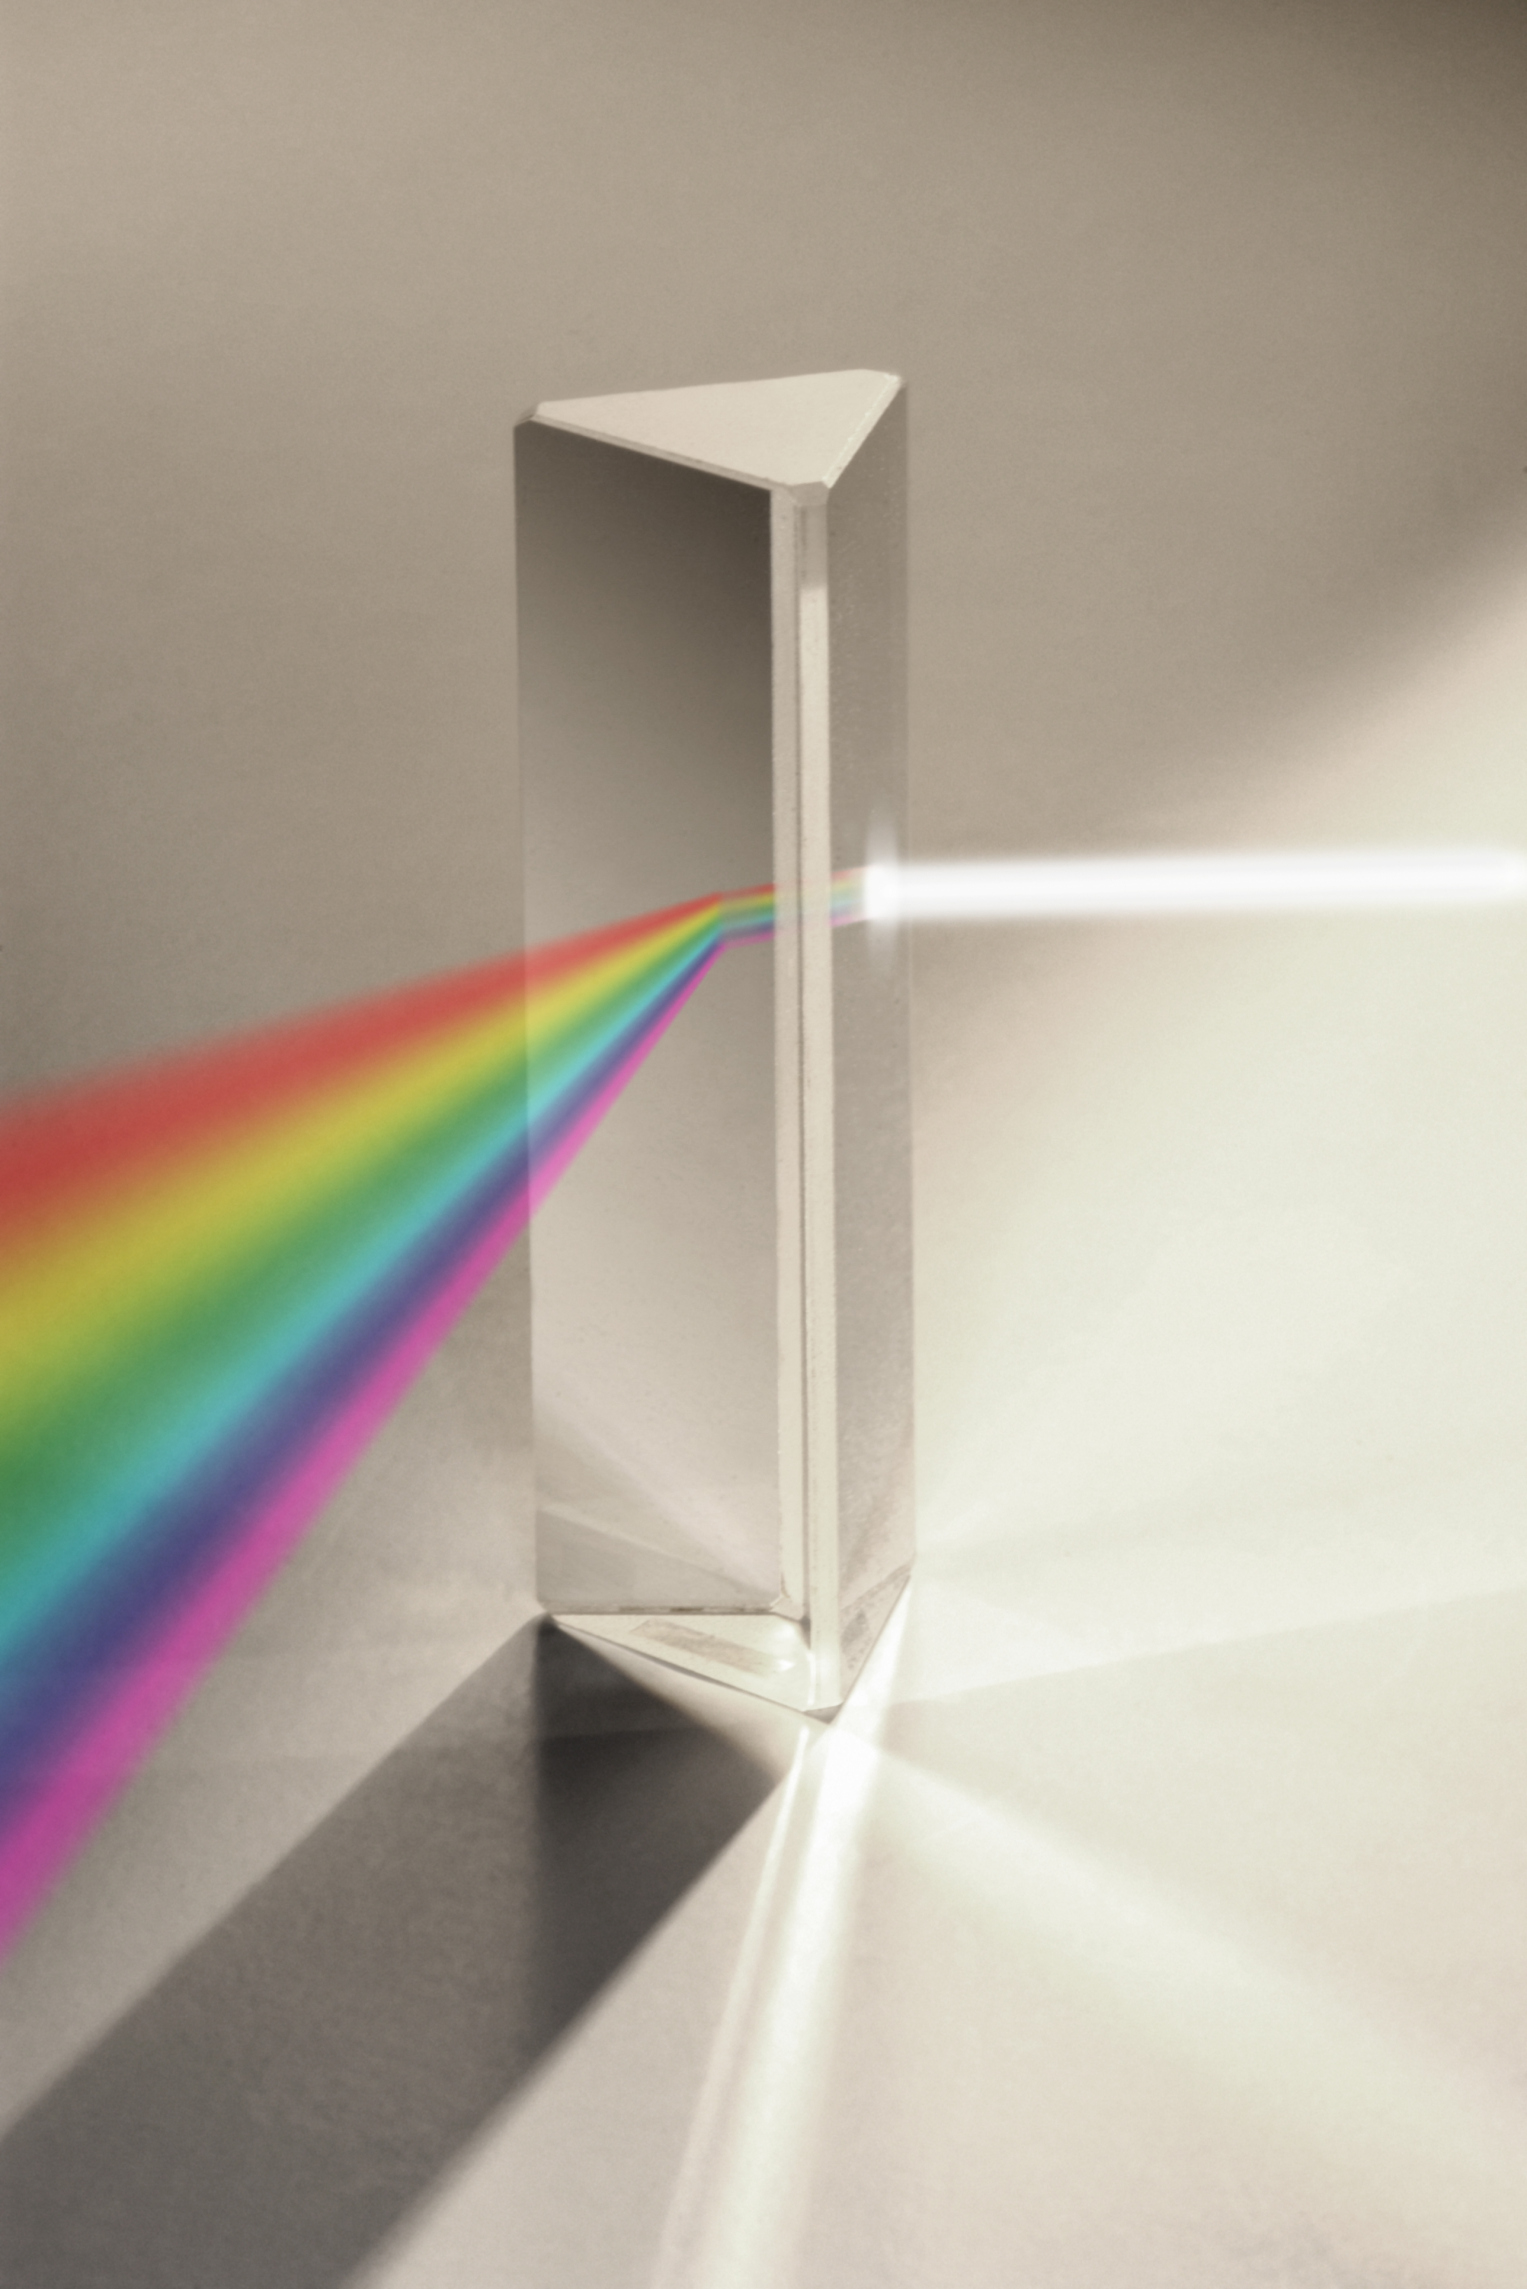 Light-Dispersion Experiments for Kids | Sciencing